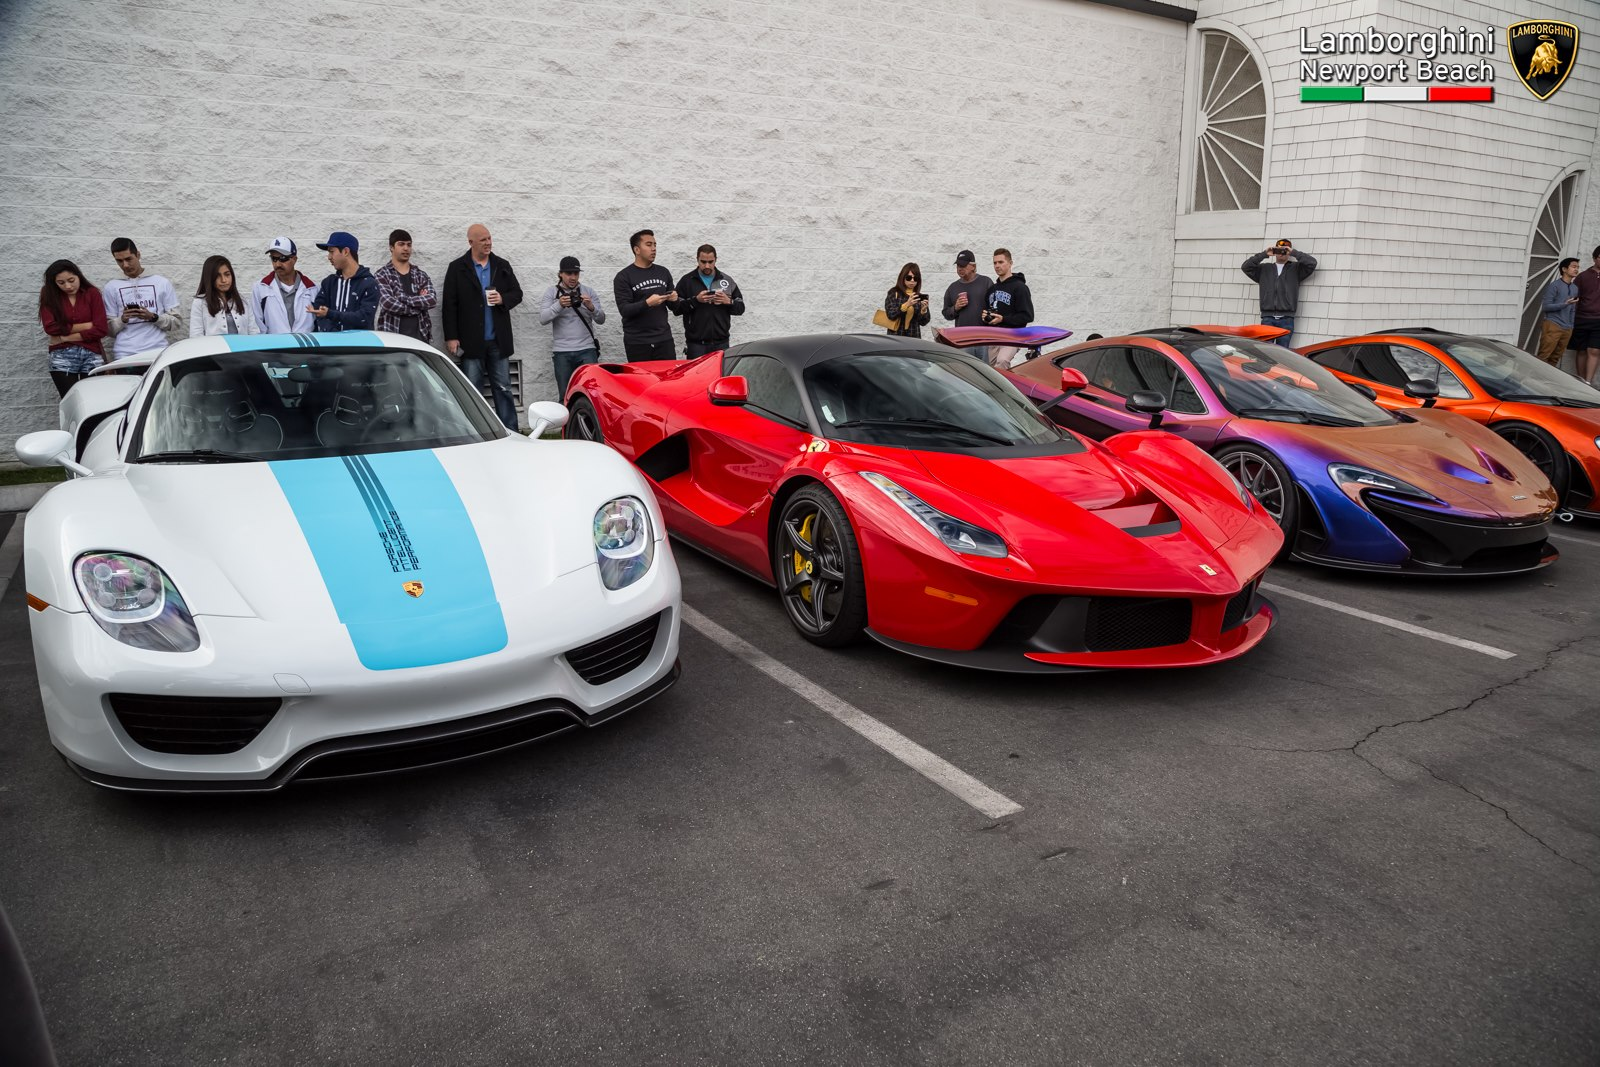 Lamborghini Newport Beach Kicks Off With Supercar Orgy GTspirit - Lamborghini newport beach car show 2018